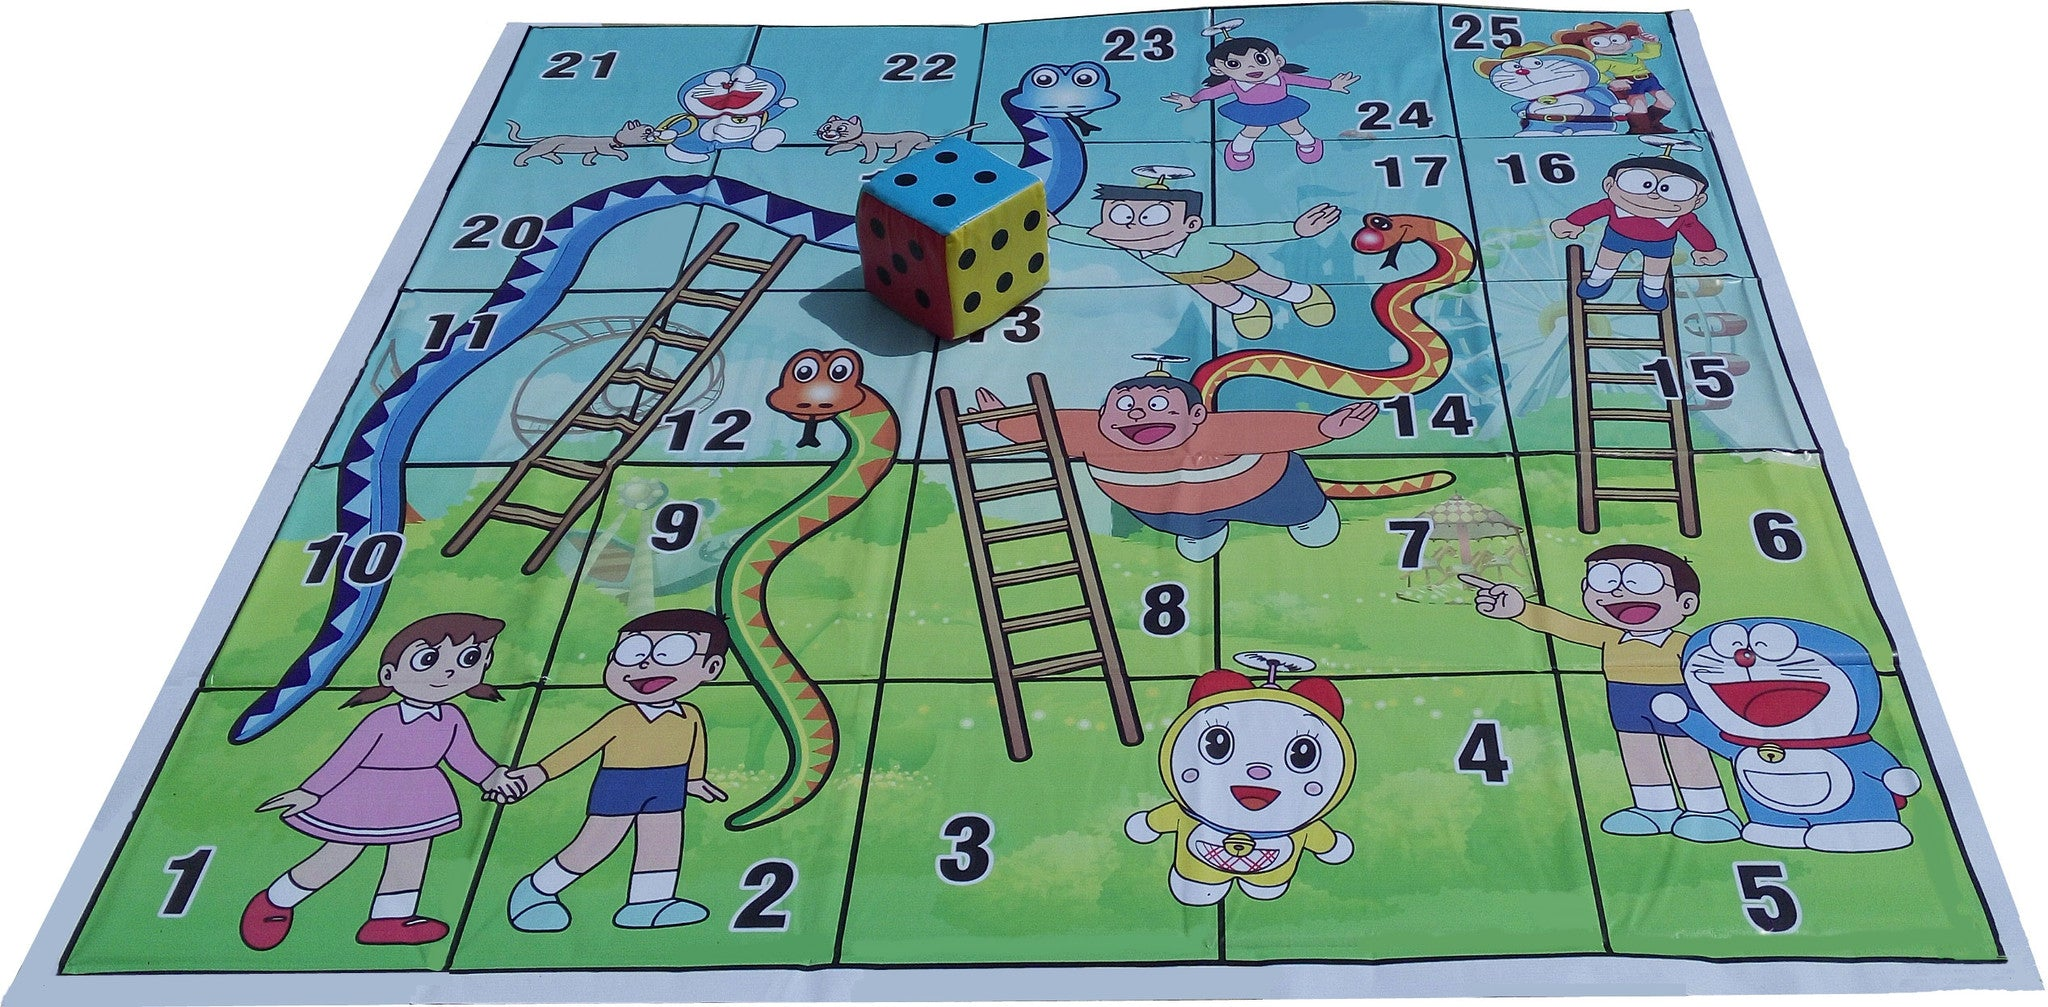 5x5 Ft. Snakes & Ladders (Doraemon Theme) Floor Mat with 8 inch Dice